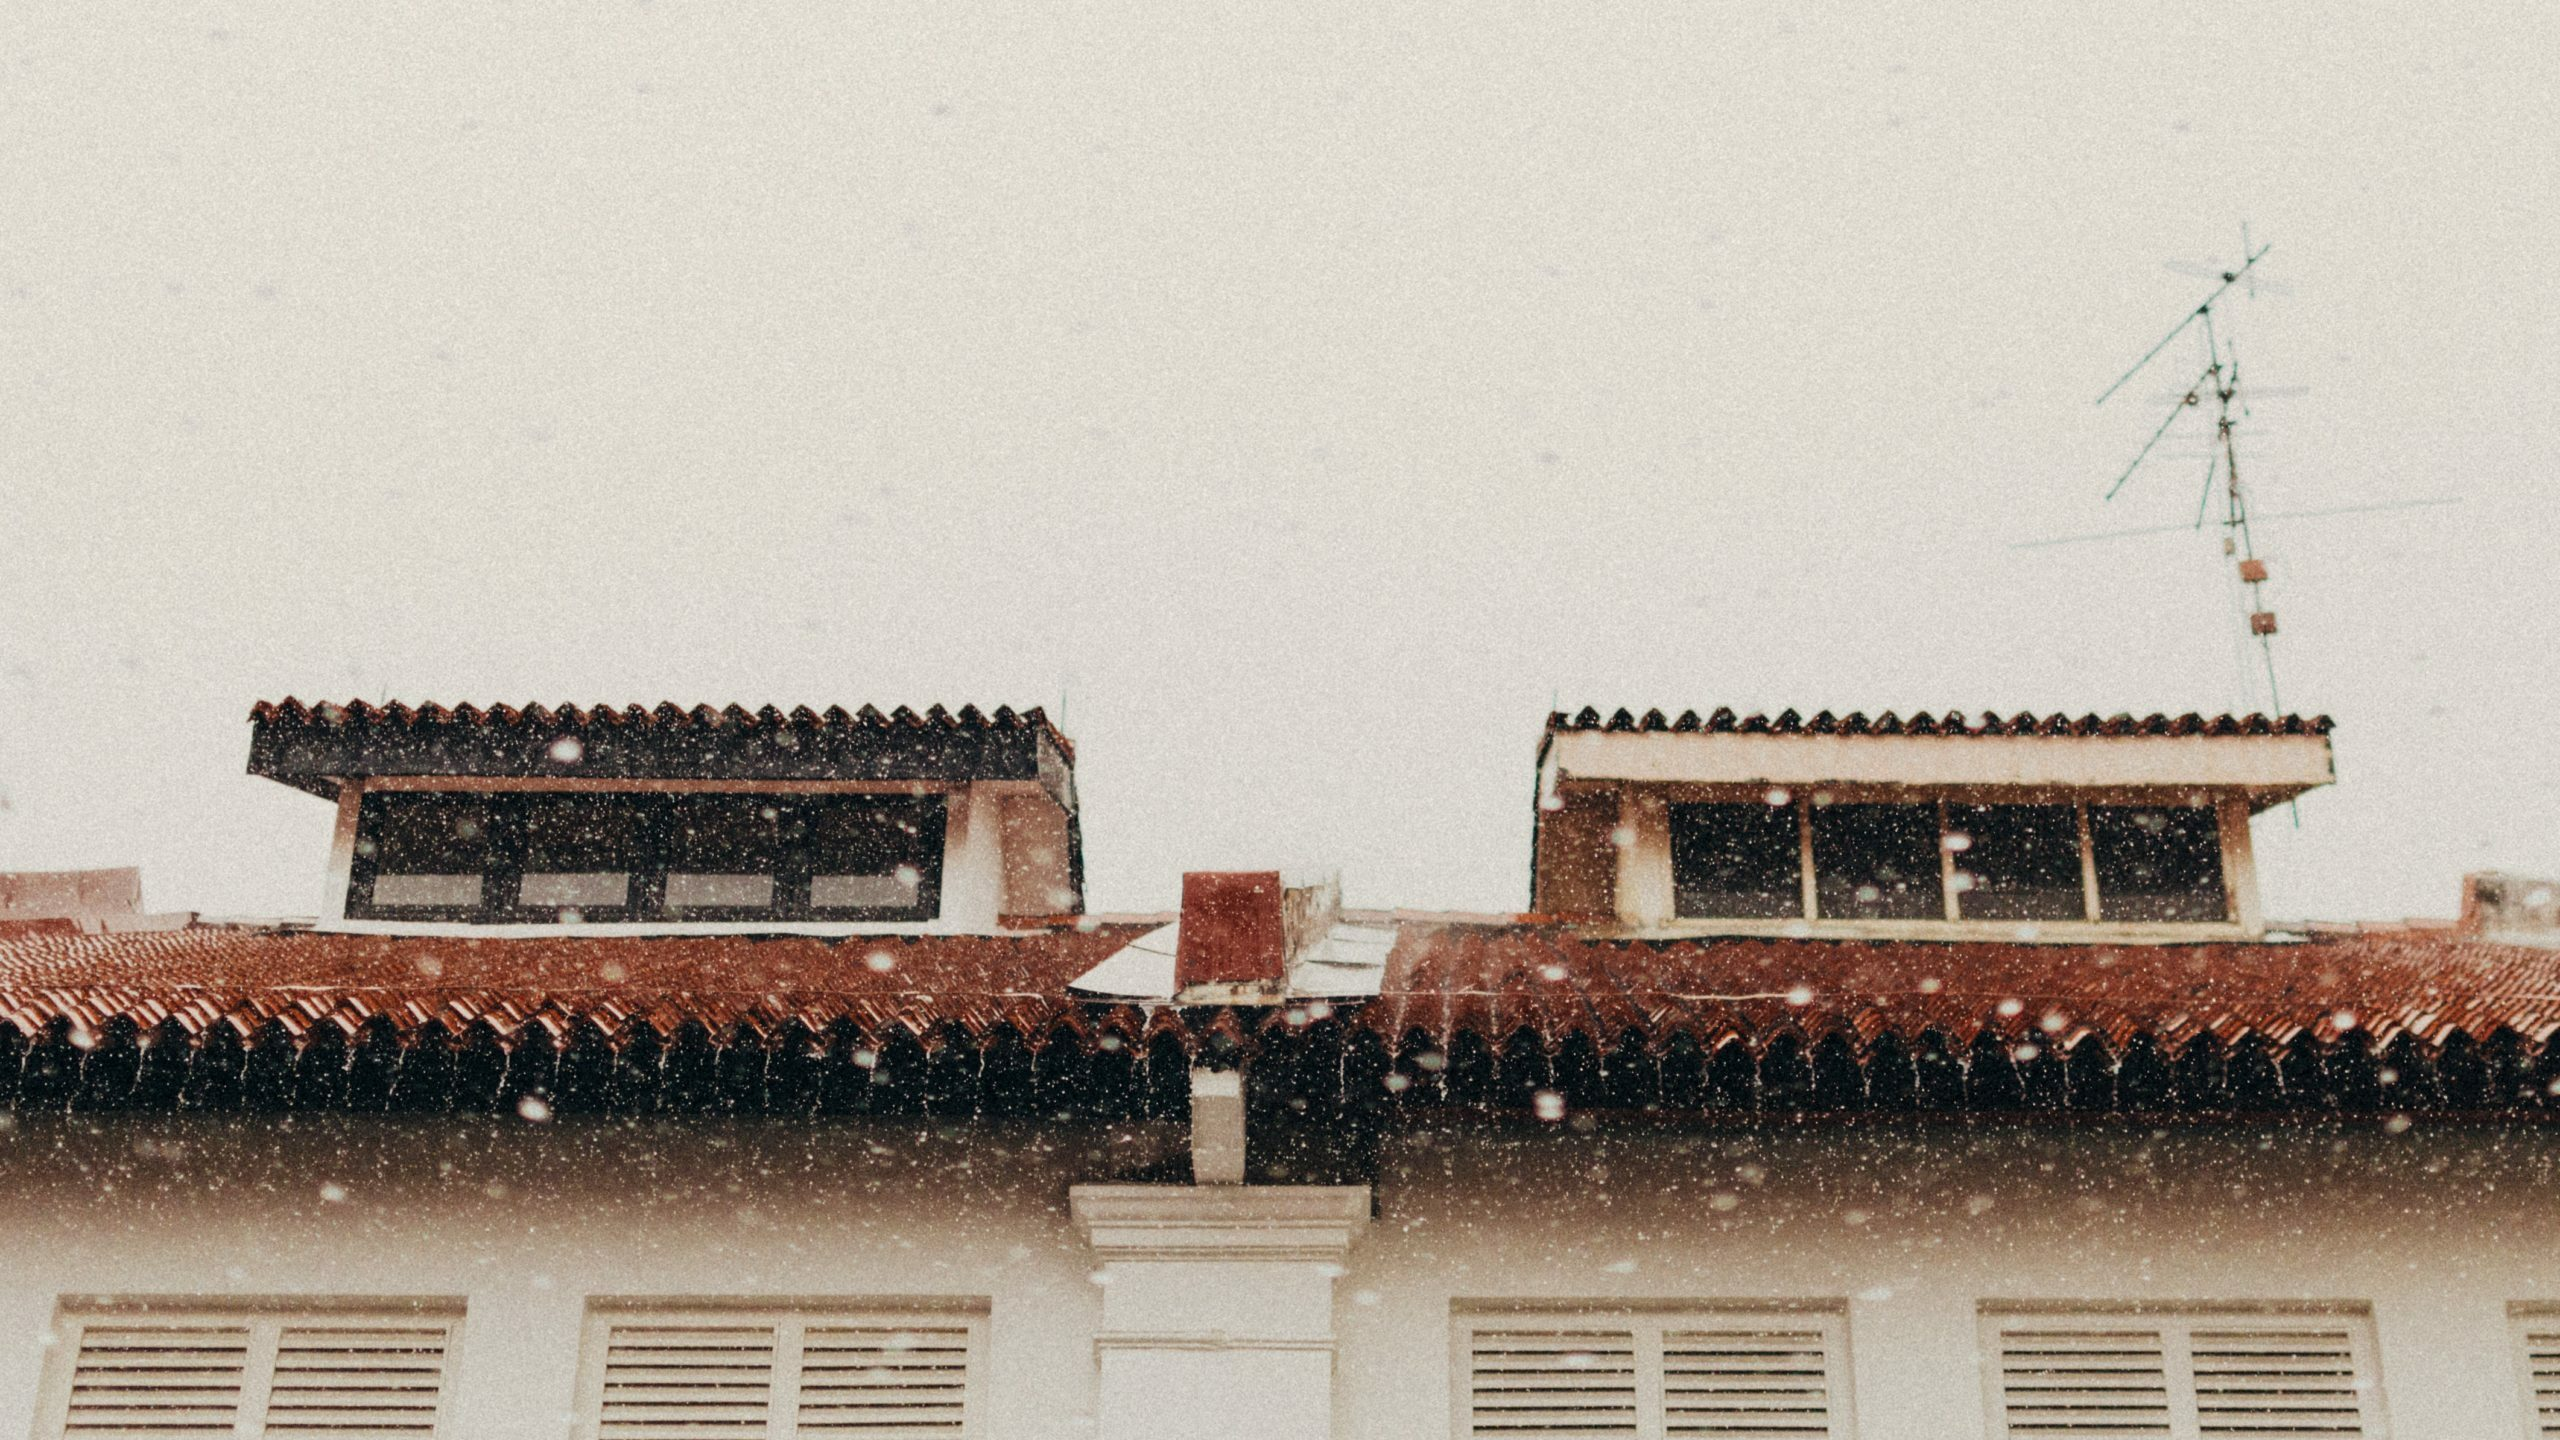 rain drops on brown roofs